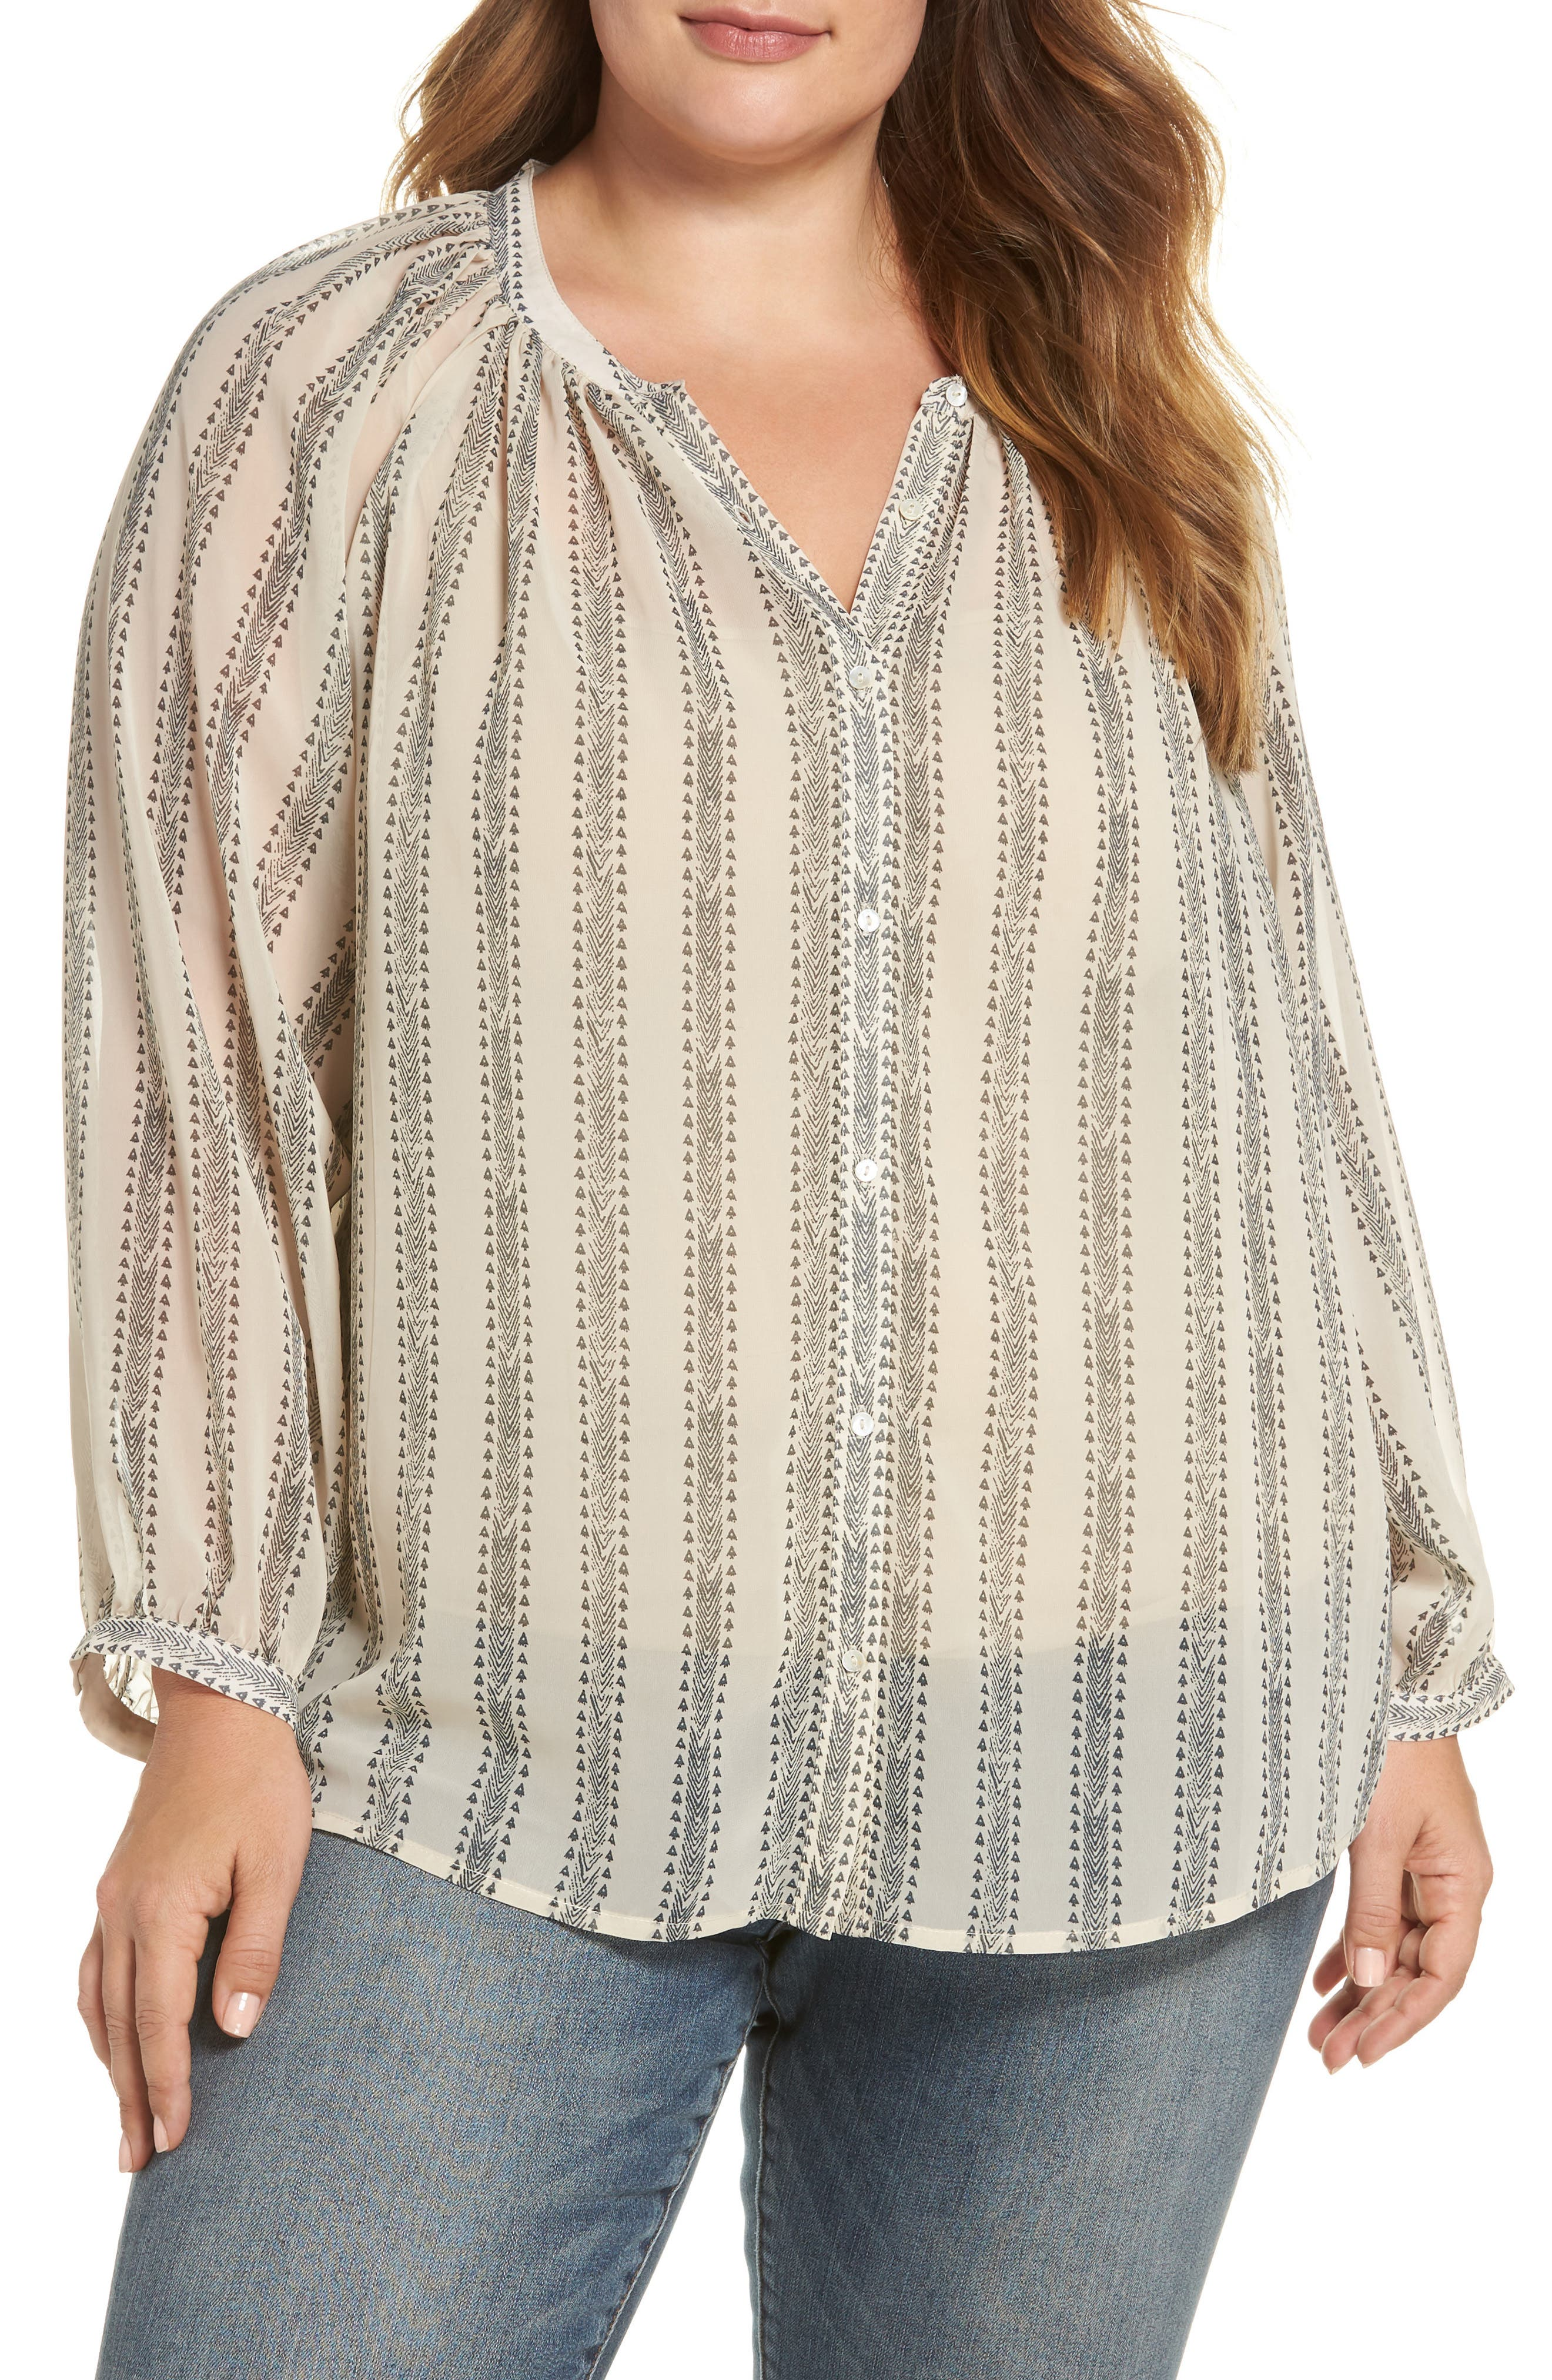 LUCKY BRAND,                             Geo Stripe Poet Top,                             Main thumbnail 1, color,                             900